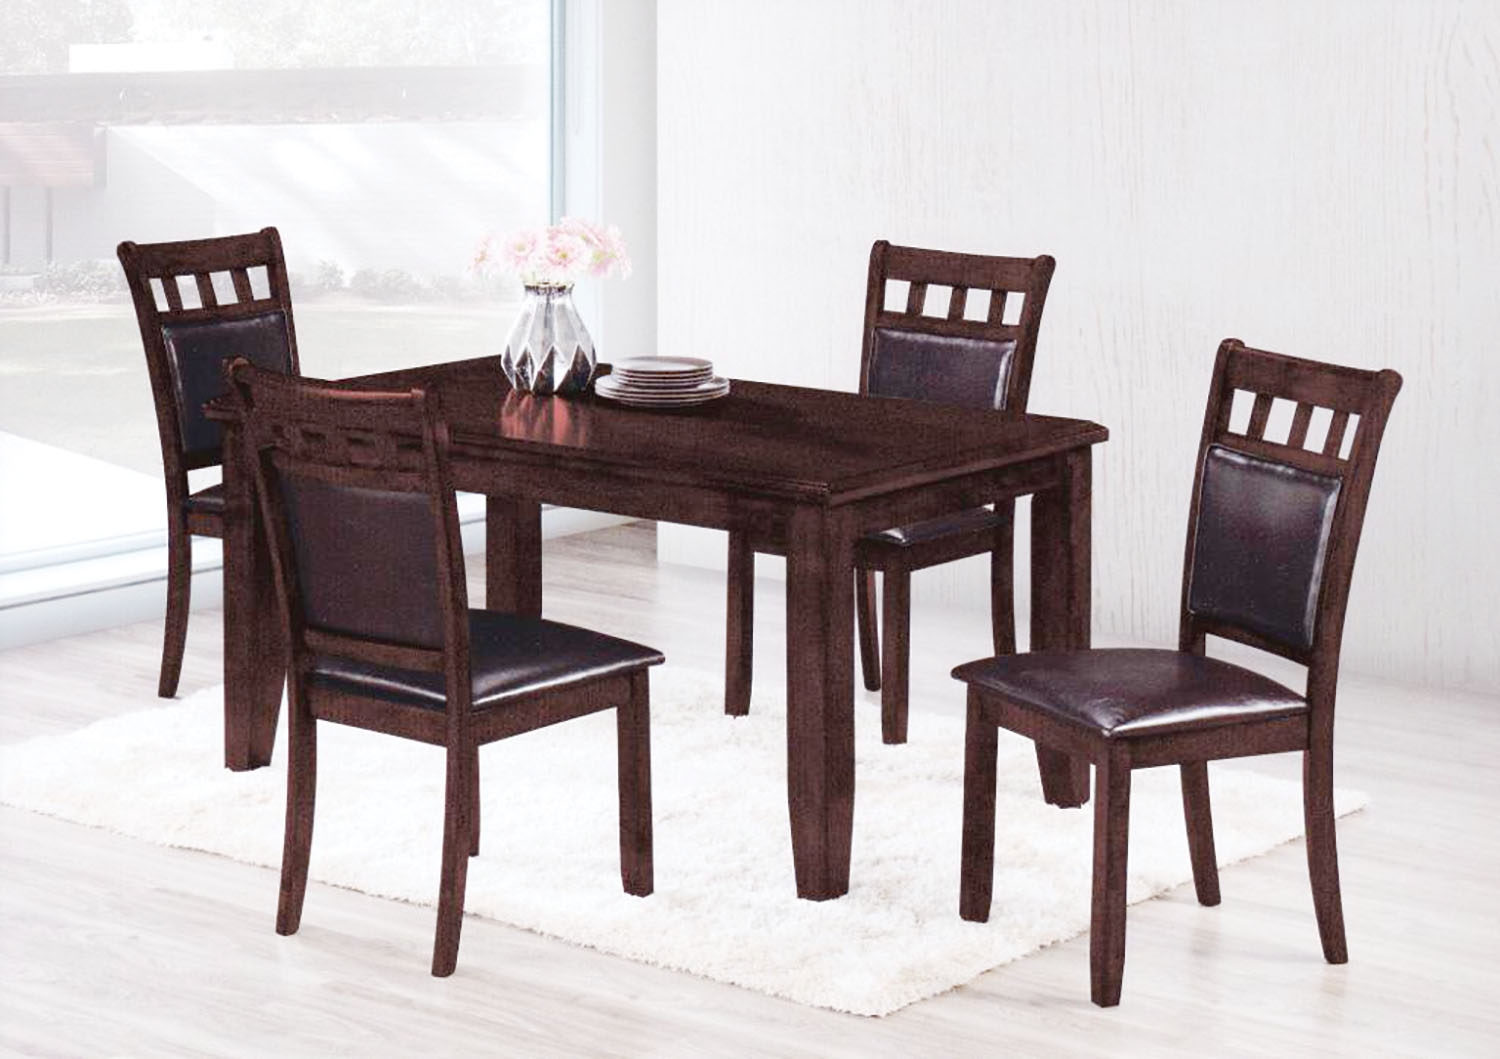 Dining room furniture toronto sale formal